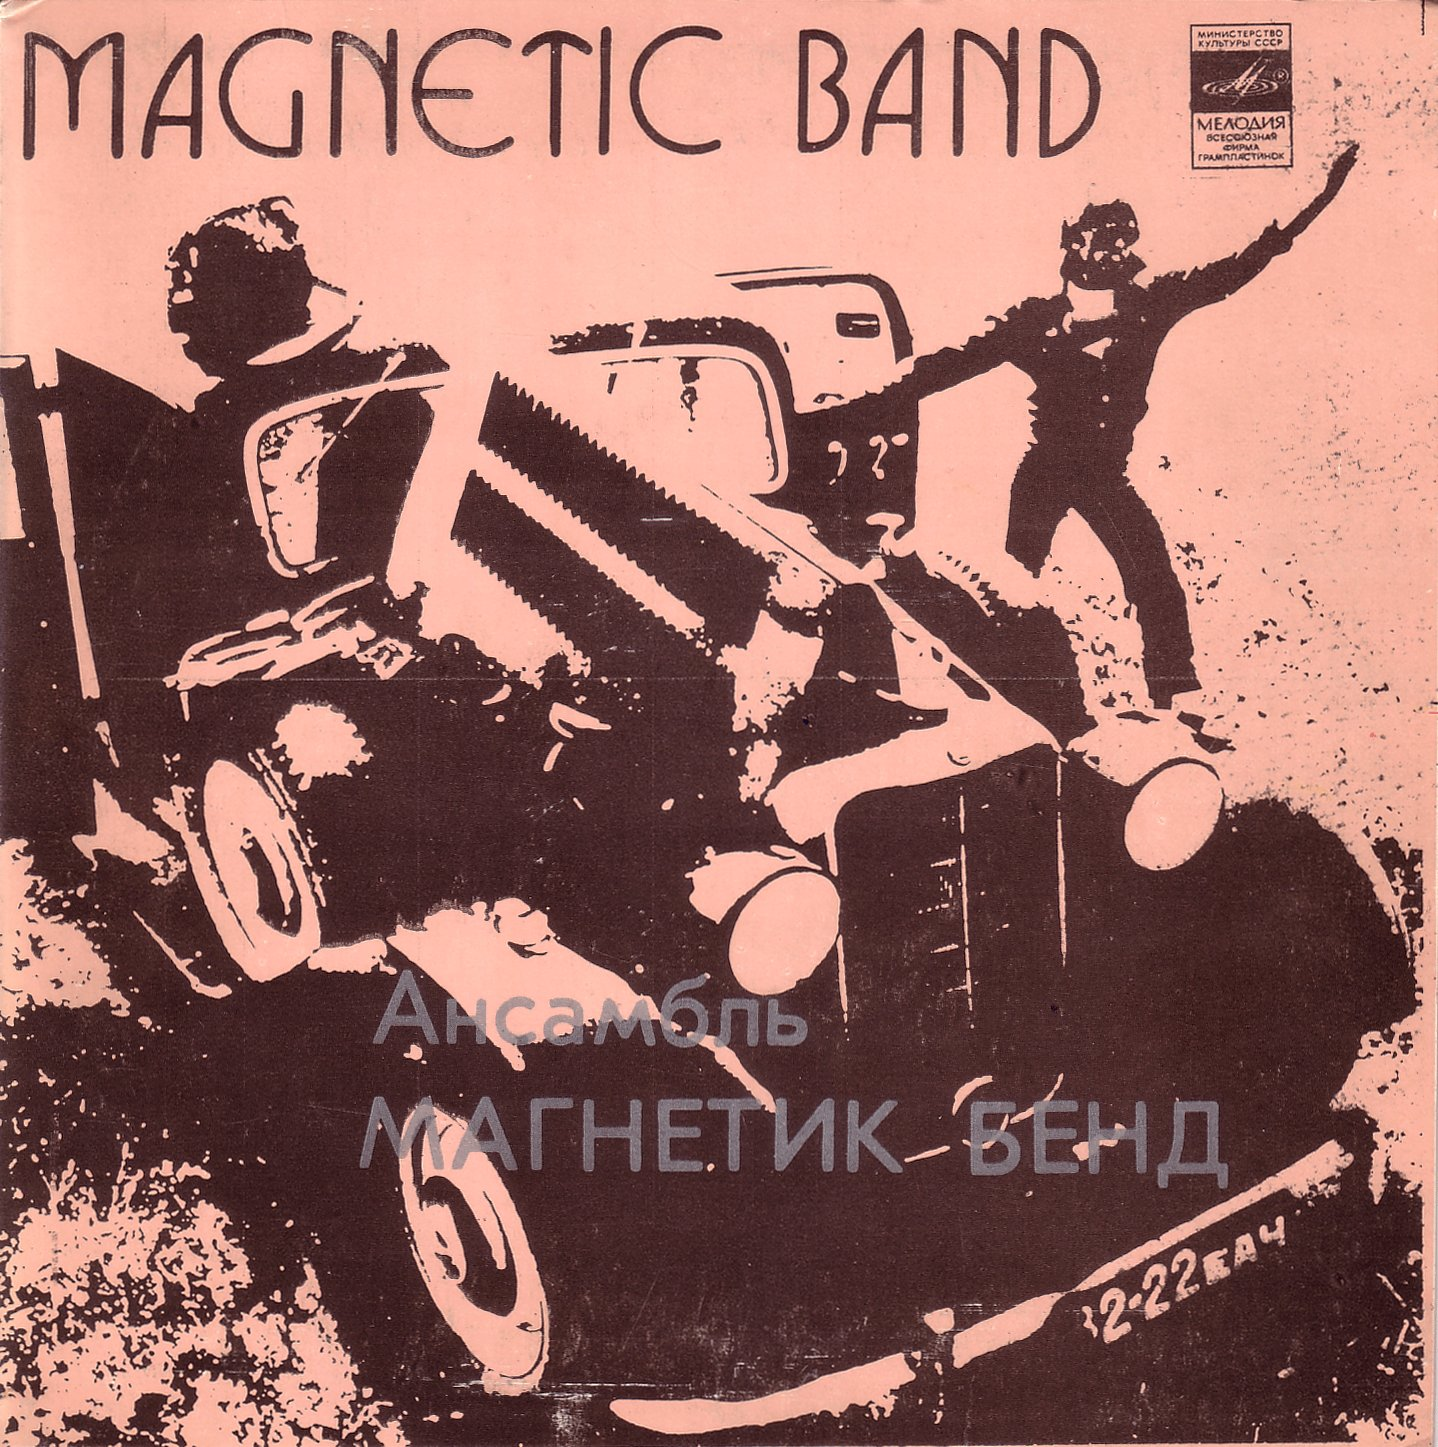 MAGNETIC BAND - Magnetic Band (1978)